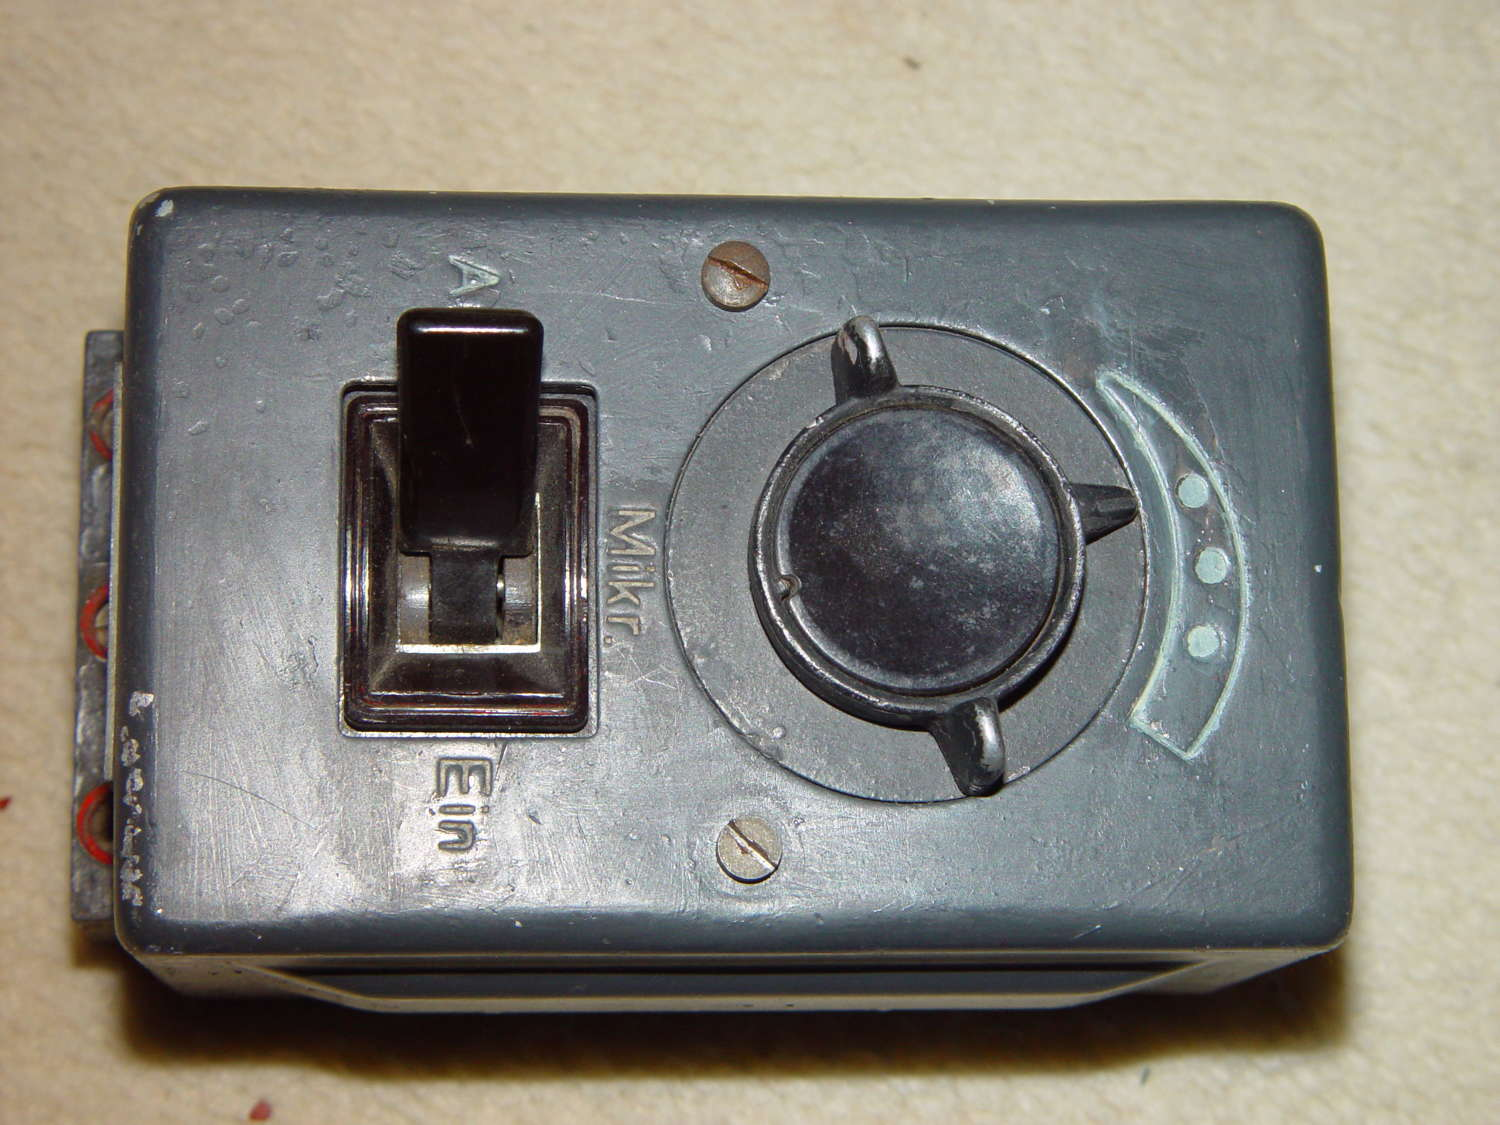 Luftwaffe ADB13 aircraft intercom box